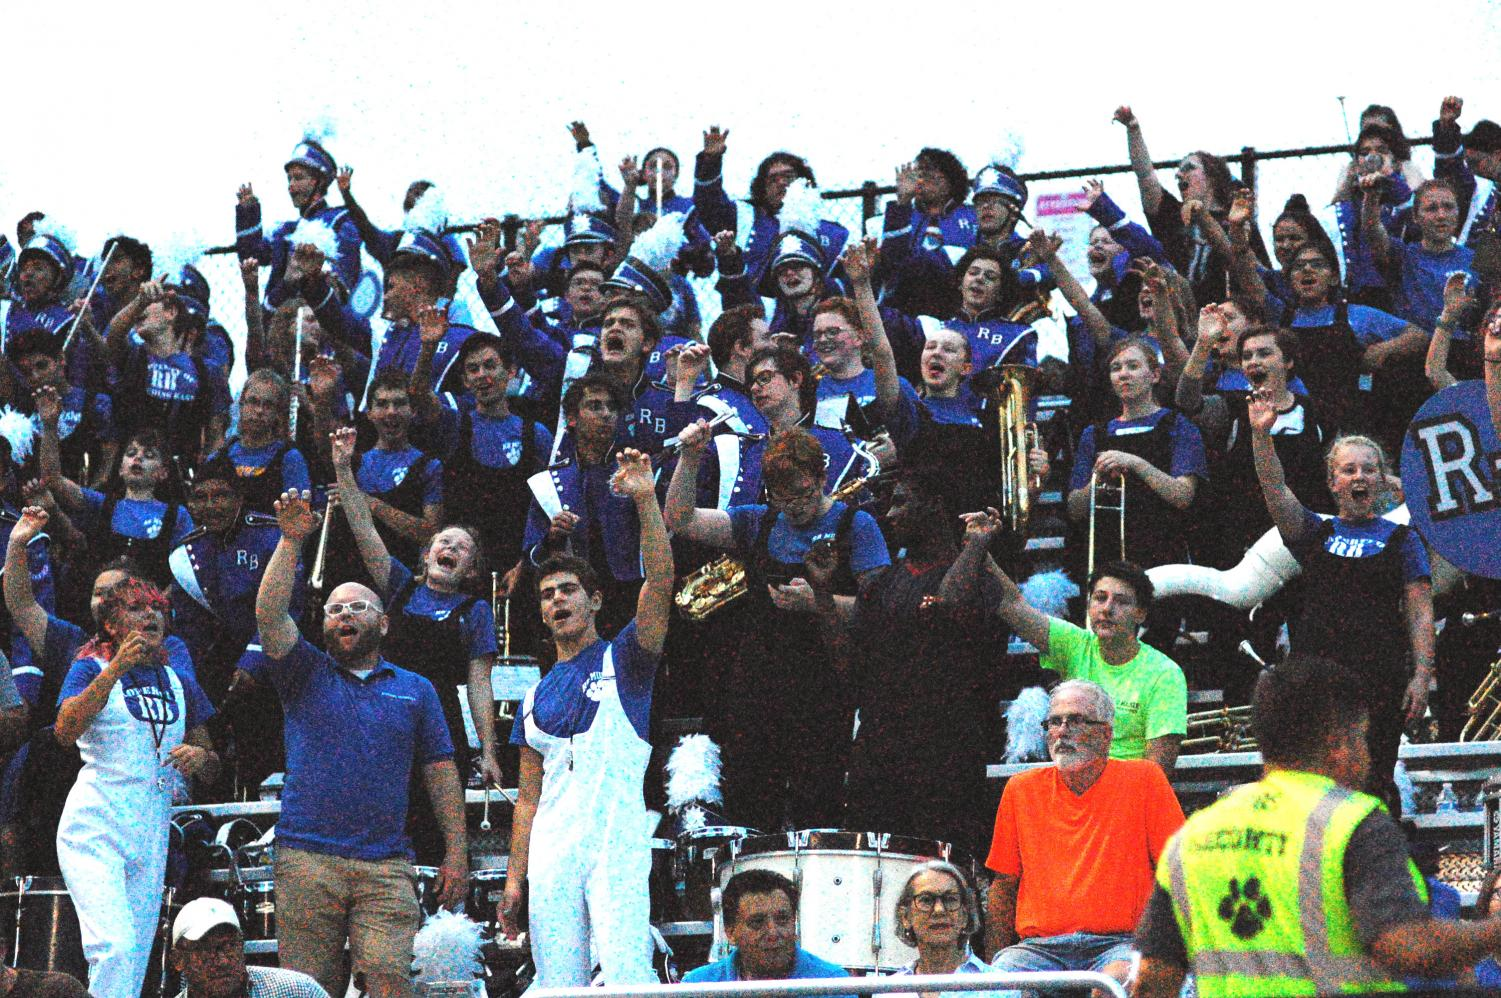 RB Band cheering in the stands